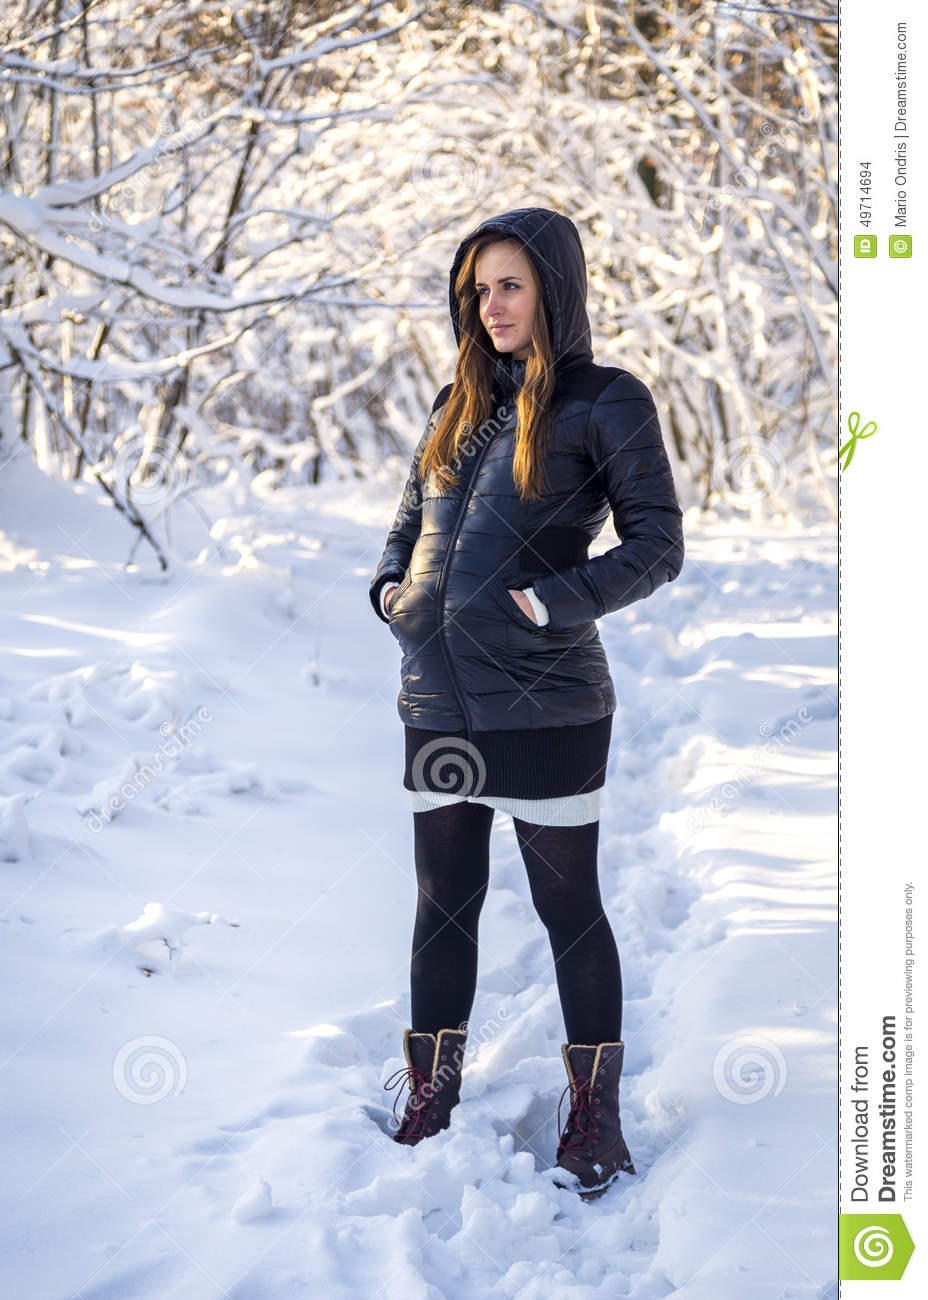 Dreamily Snow Covered Winter Village Stock Photography ...